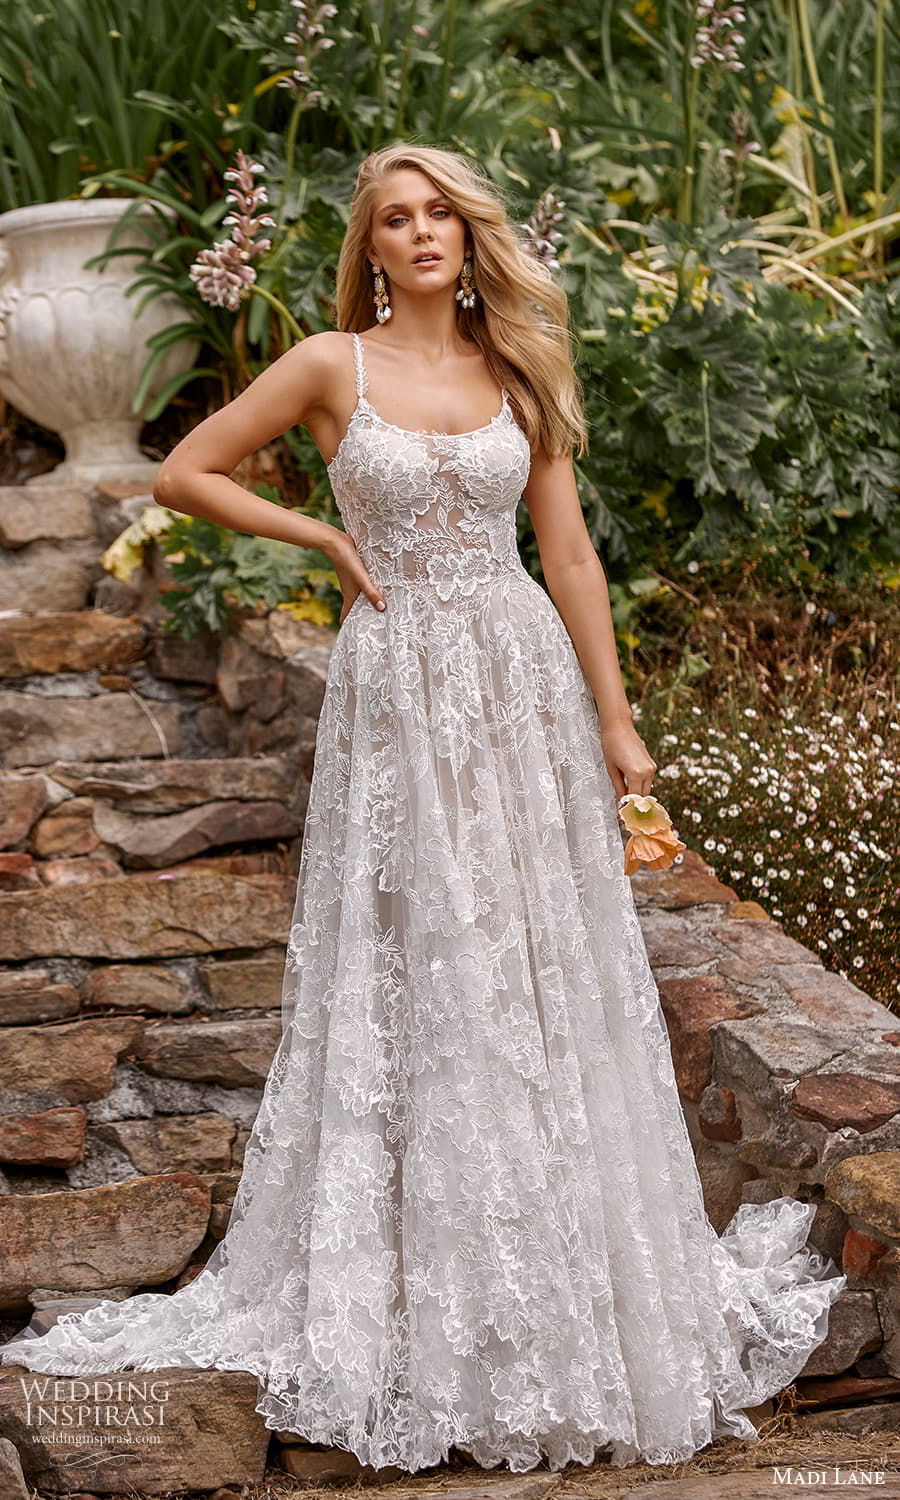 madi lane fall 2021 bridal sleeveless straps scoop neckline fully embellished lace a line ball gown wedding dress chapel train (7) mv